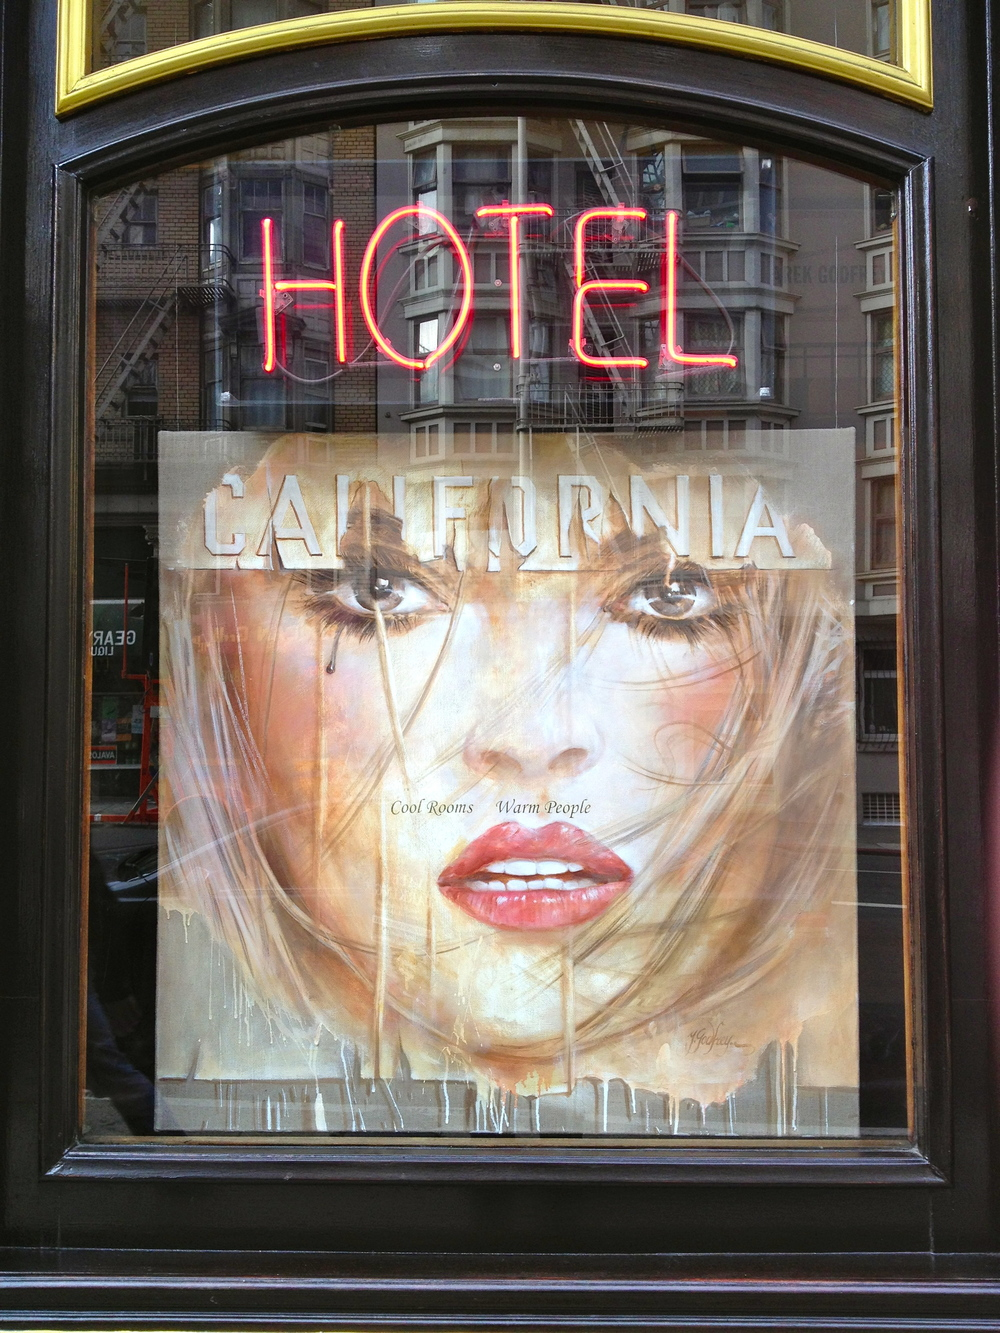 Hotel California, San Francisco. Artist In Residence Program, Spring 2013 Artist, Yarek Godfrey